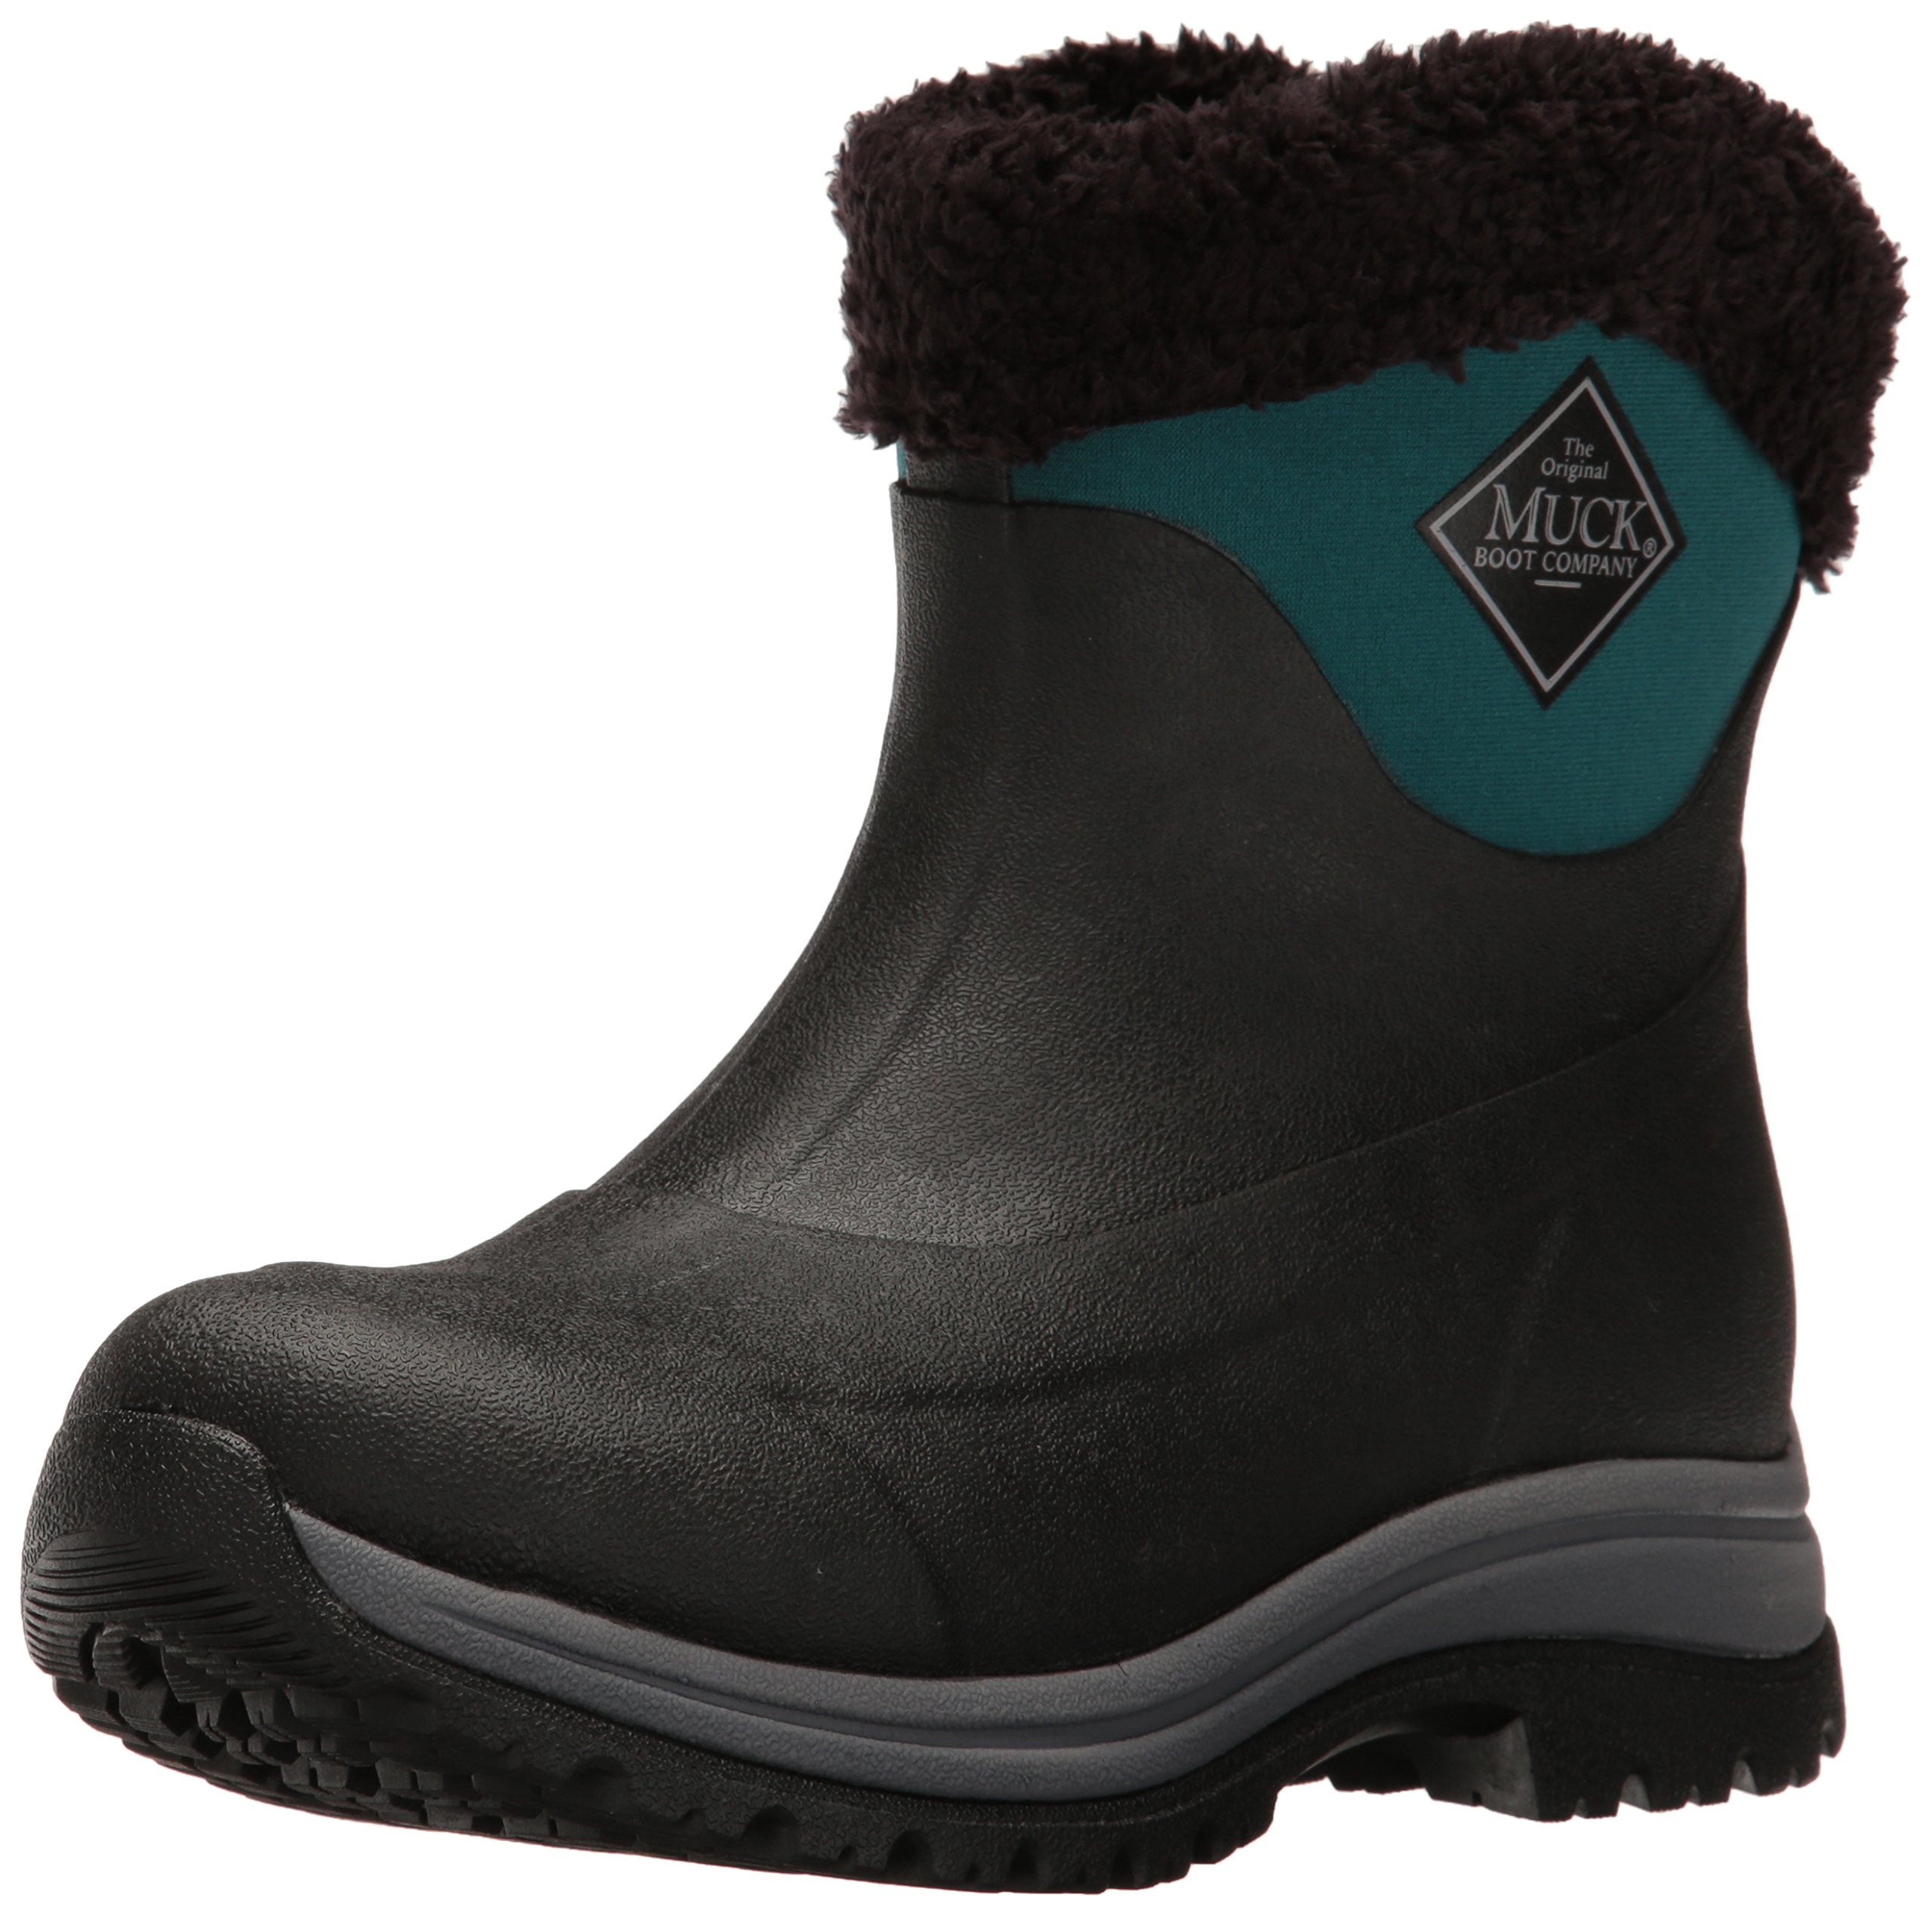 Muck Boot Women's Arctic Apres Slip-On Snow, Black/Shaded Spruce, 10 US/10 M US by Muck Boot